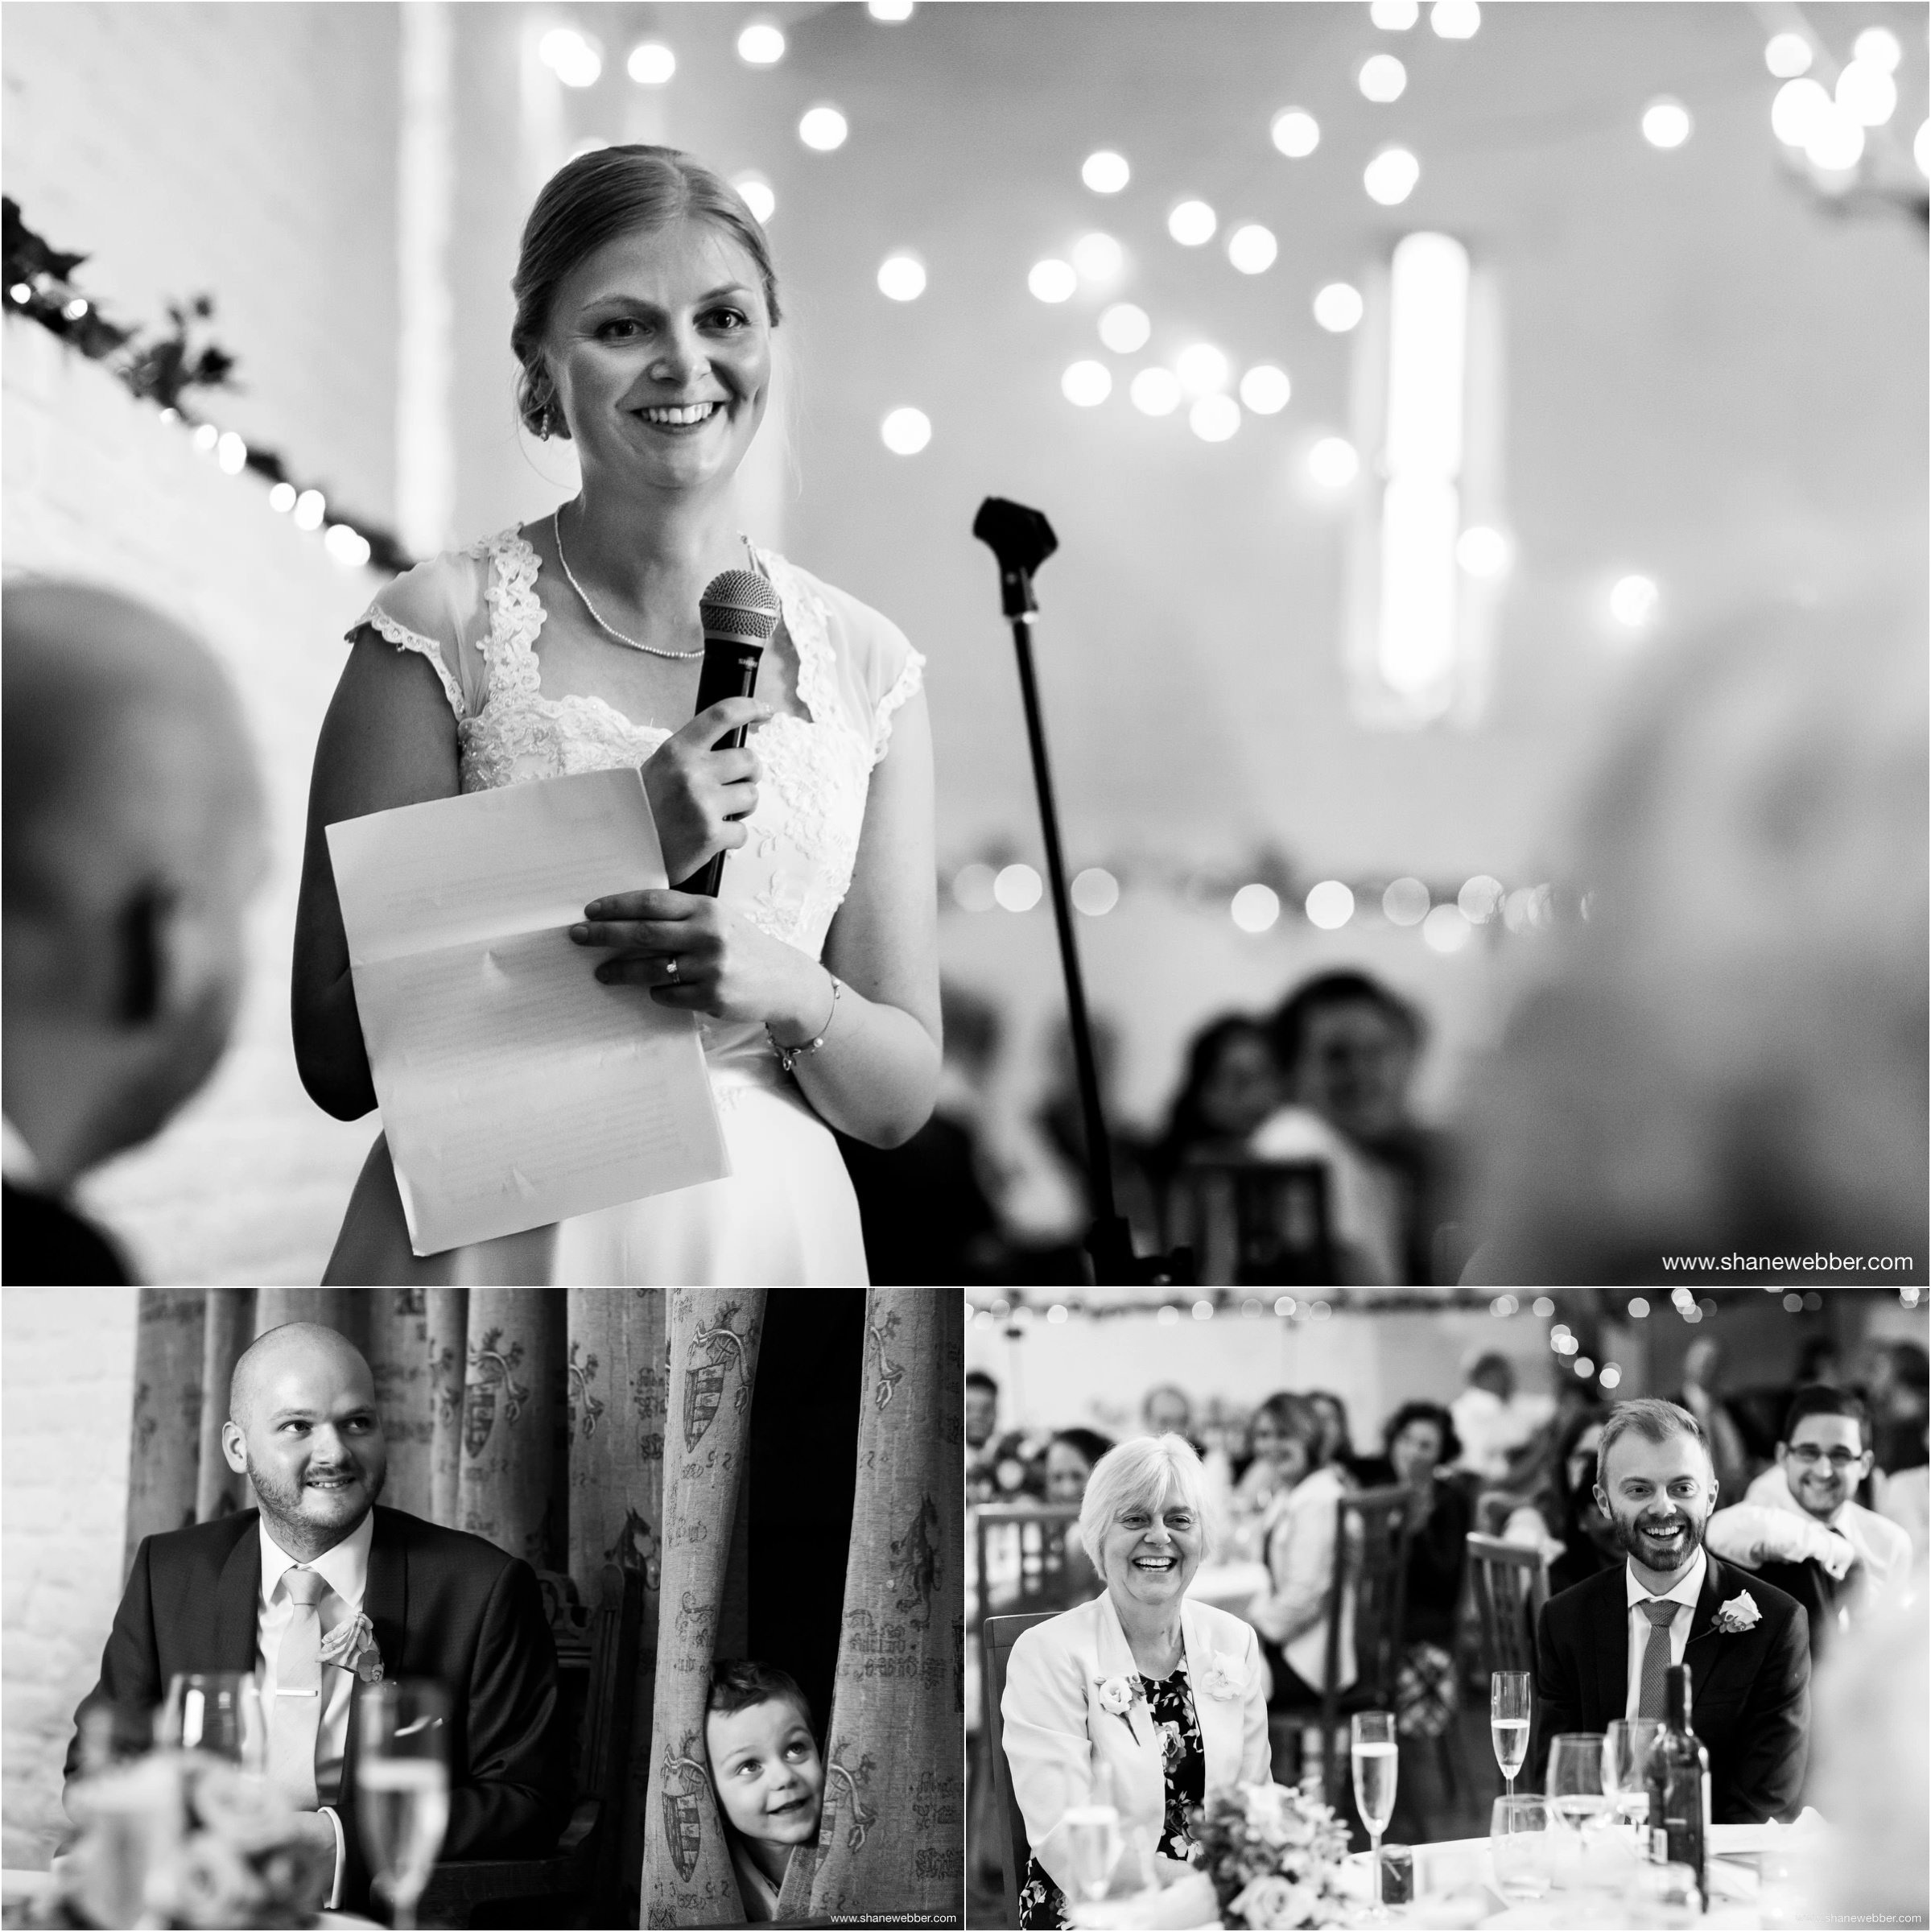 Speeches at Ufton Court Barn